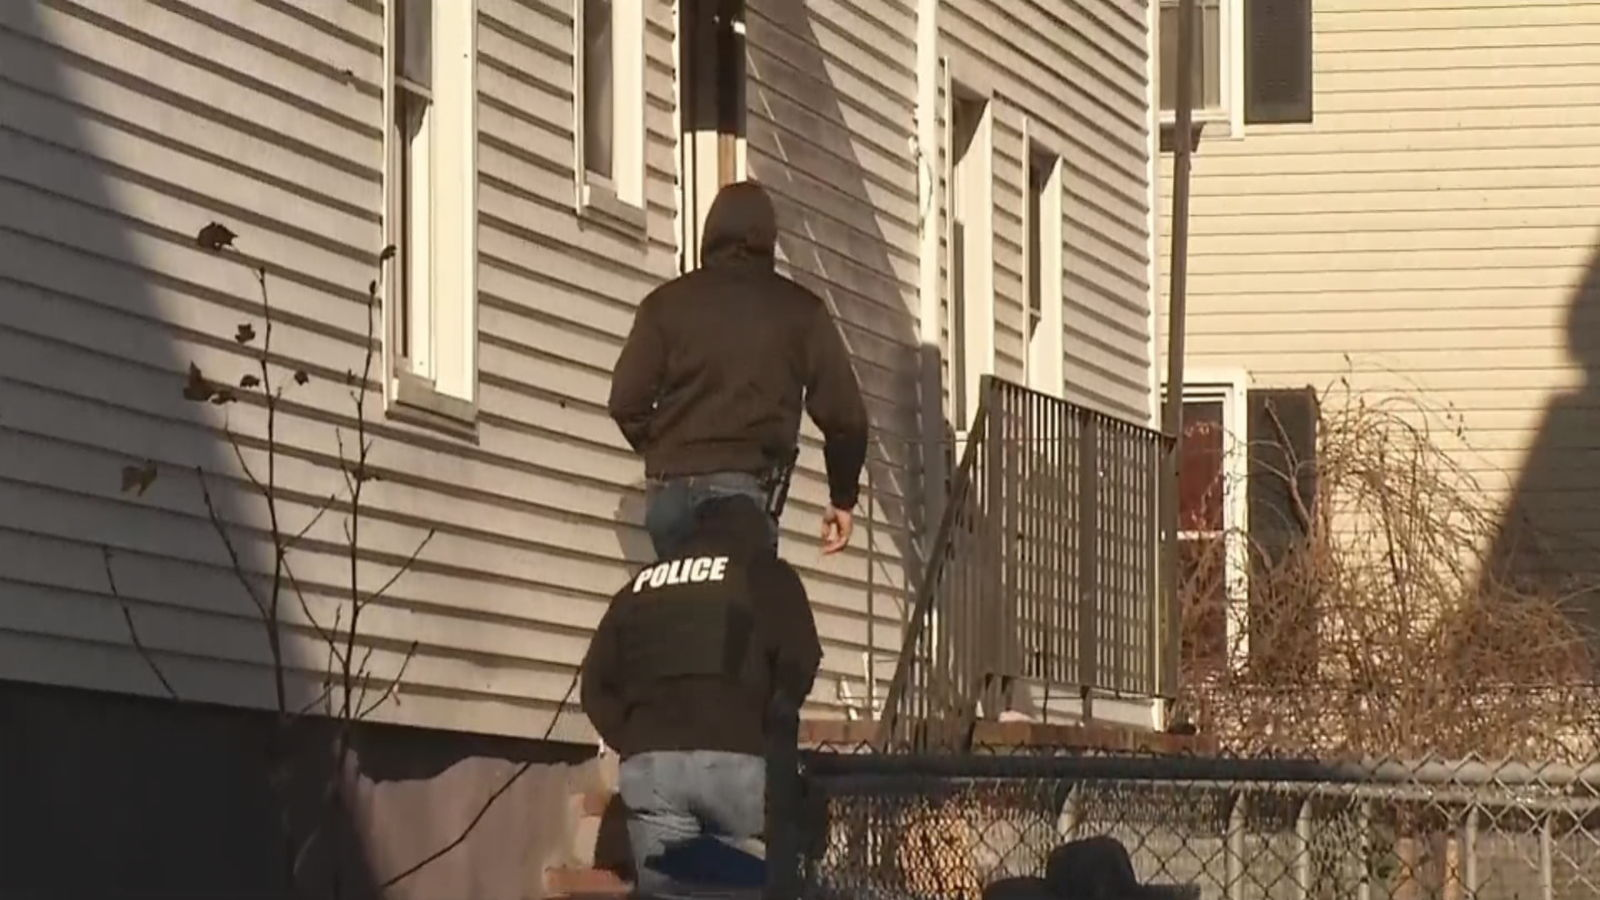 FBI agents and police officers are seen taking documents from a house on North Front Street in New Bedford as part of an investigation into the Latin Kings, Dec. 5, 2019. (WJAR)